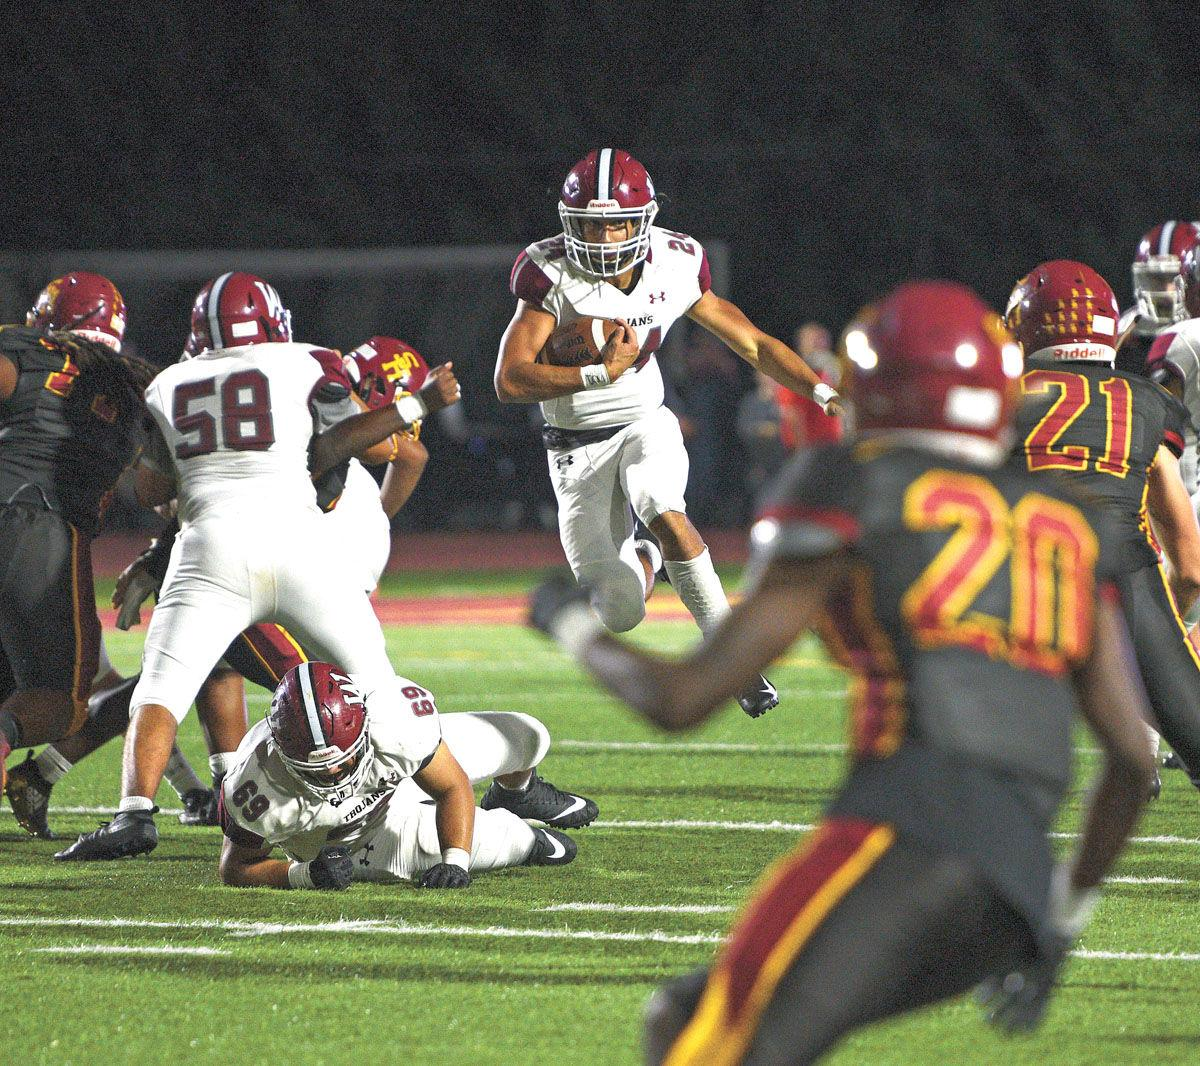 Morristown West shows heart in loss to Science Hill